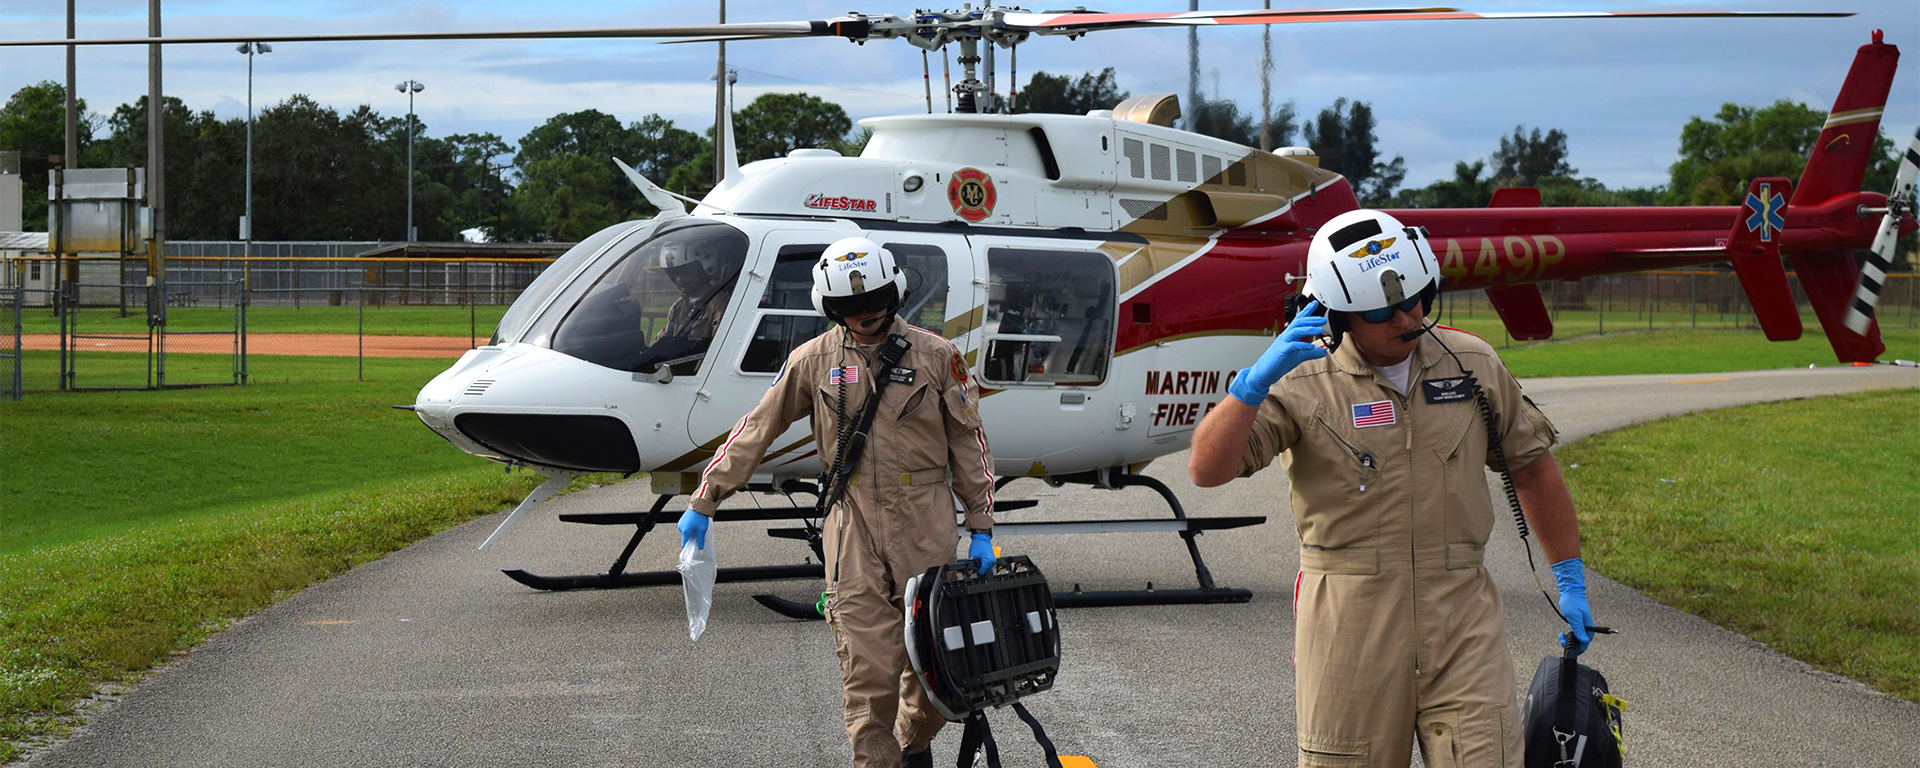 A Martin County Fire Rescue LifeStar Helicopter